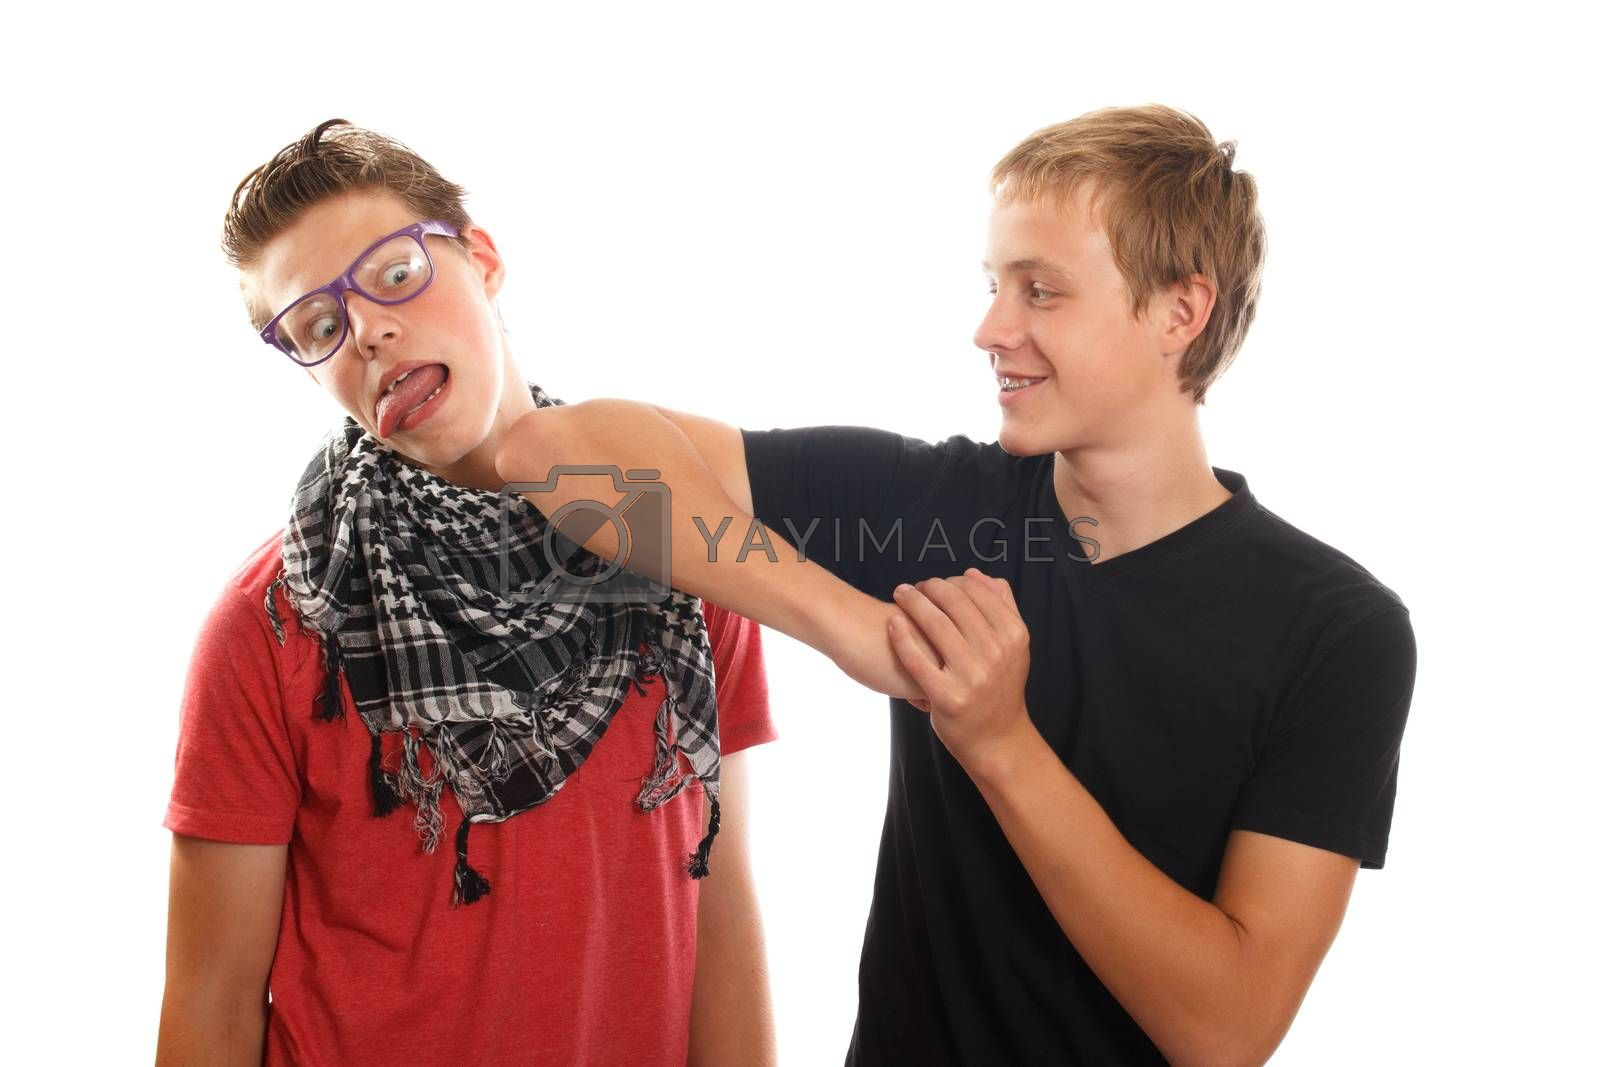 Royalty free image of teen bullying by AigarsR